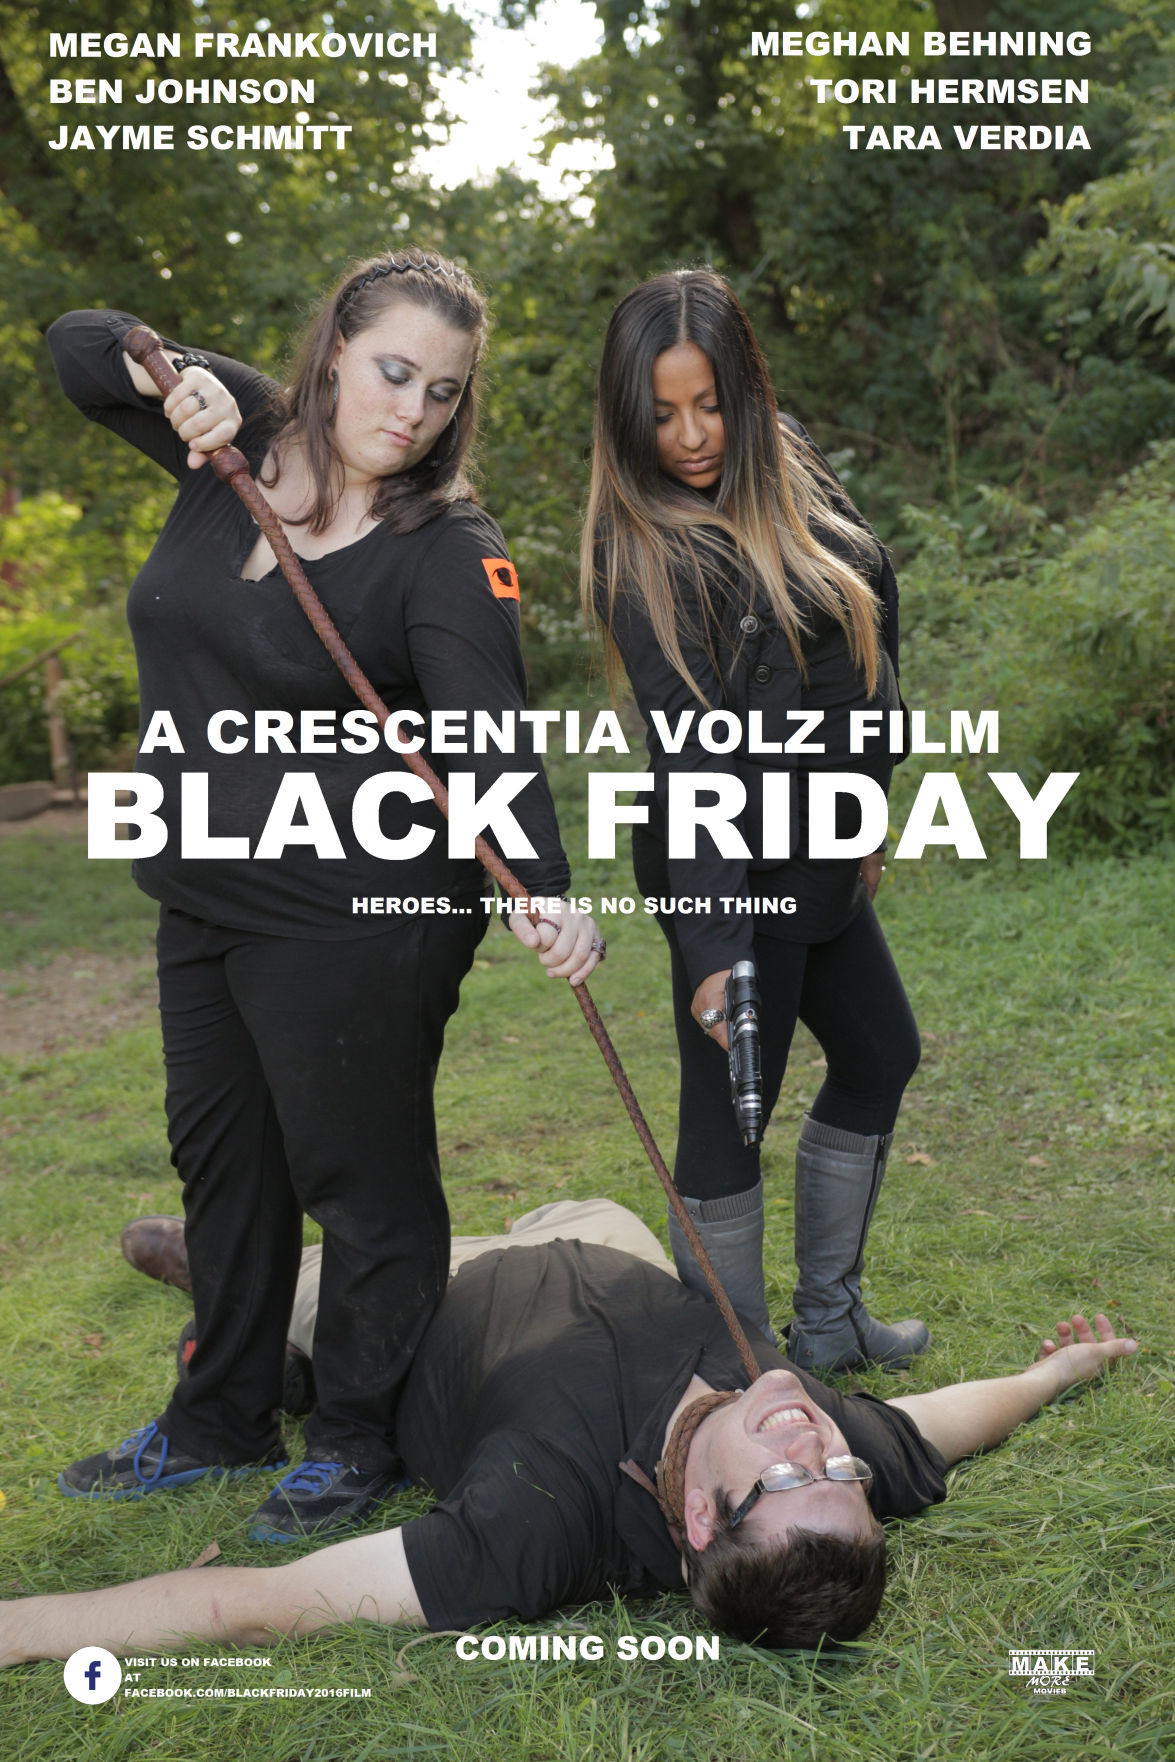 Local Film Black Friday To Premiere On Black Friday Features Telegraphherald Com